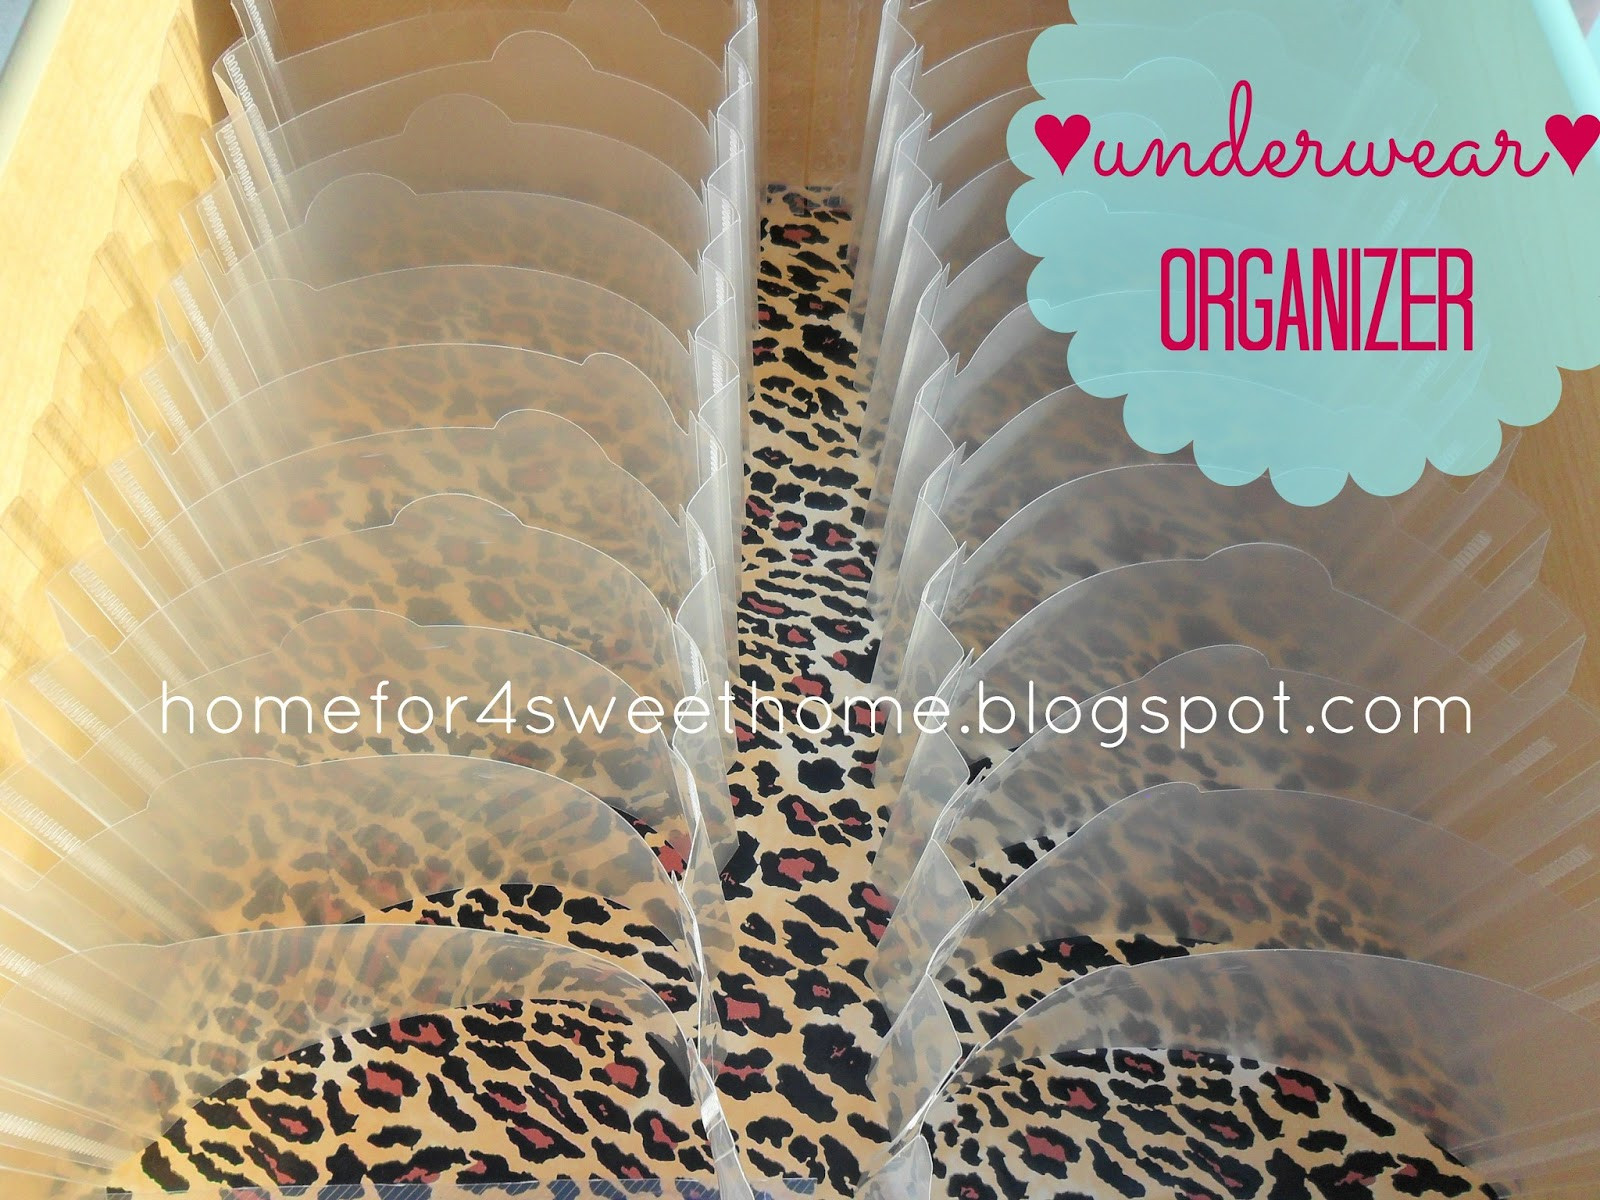 Best ideas about Underwear Organizer DIY . Save or Pin Home For4 Sweet Home Spring Cleaning Organizing Underwear Now.